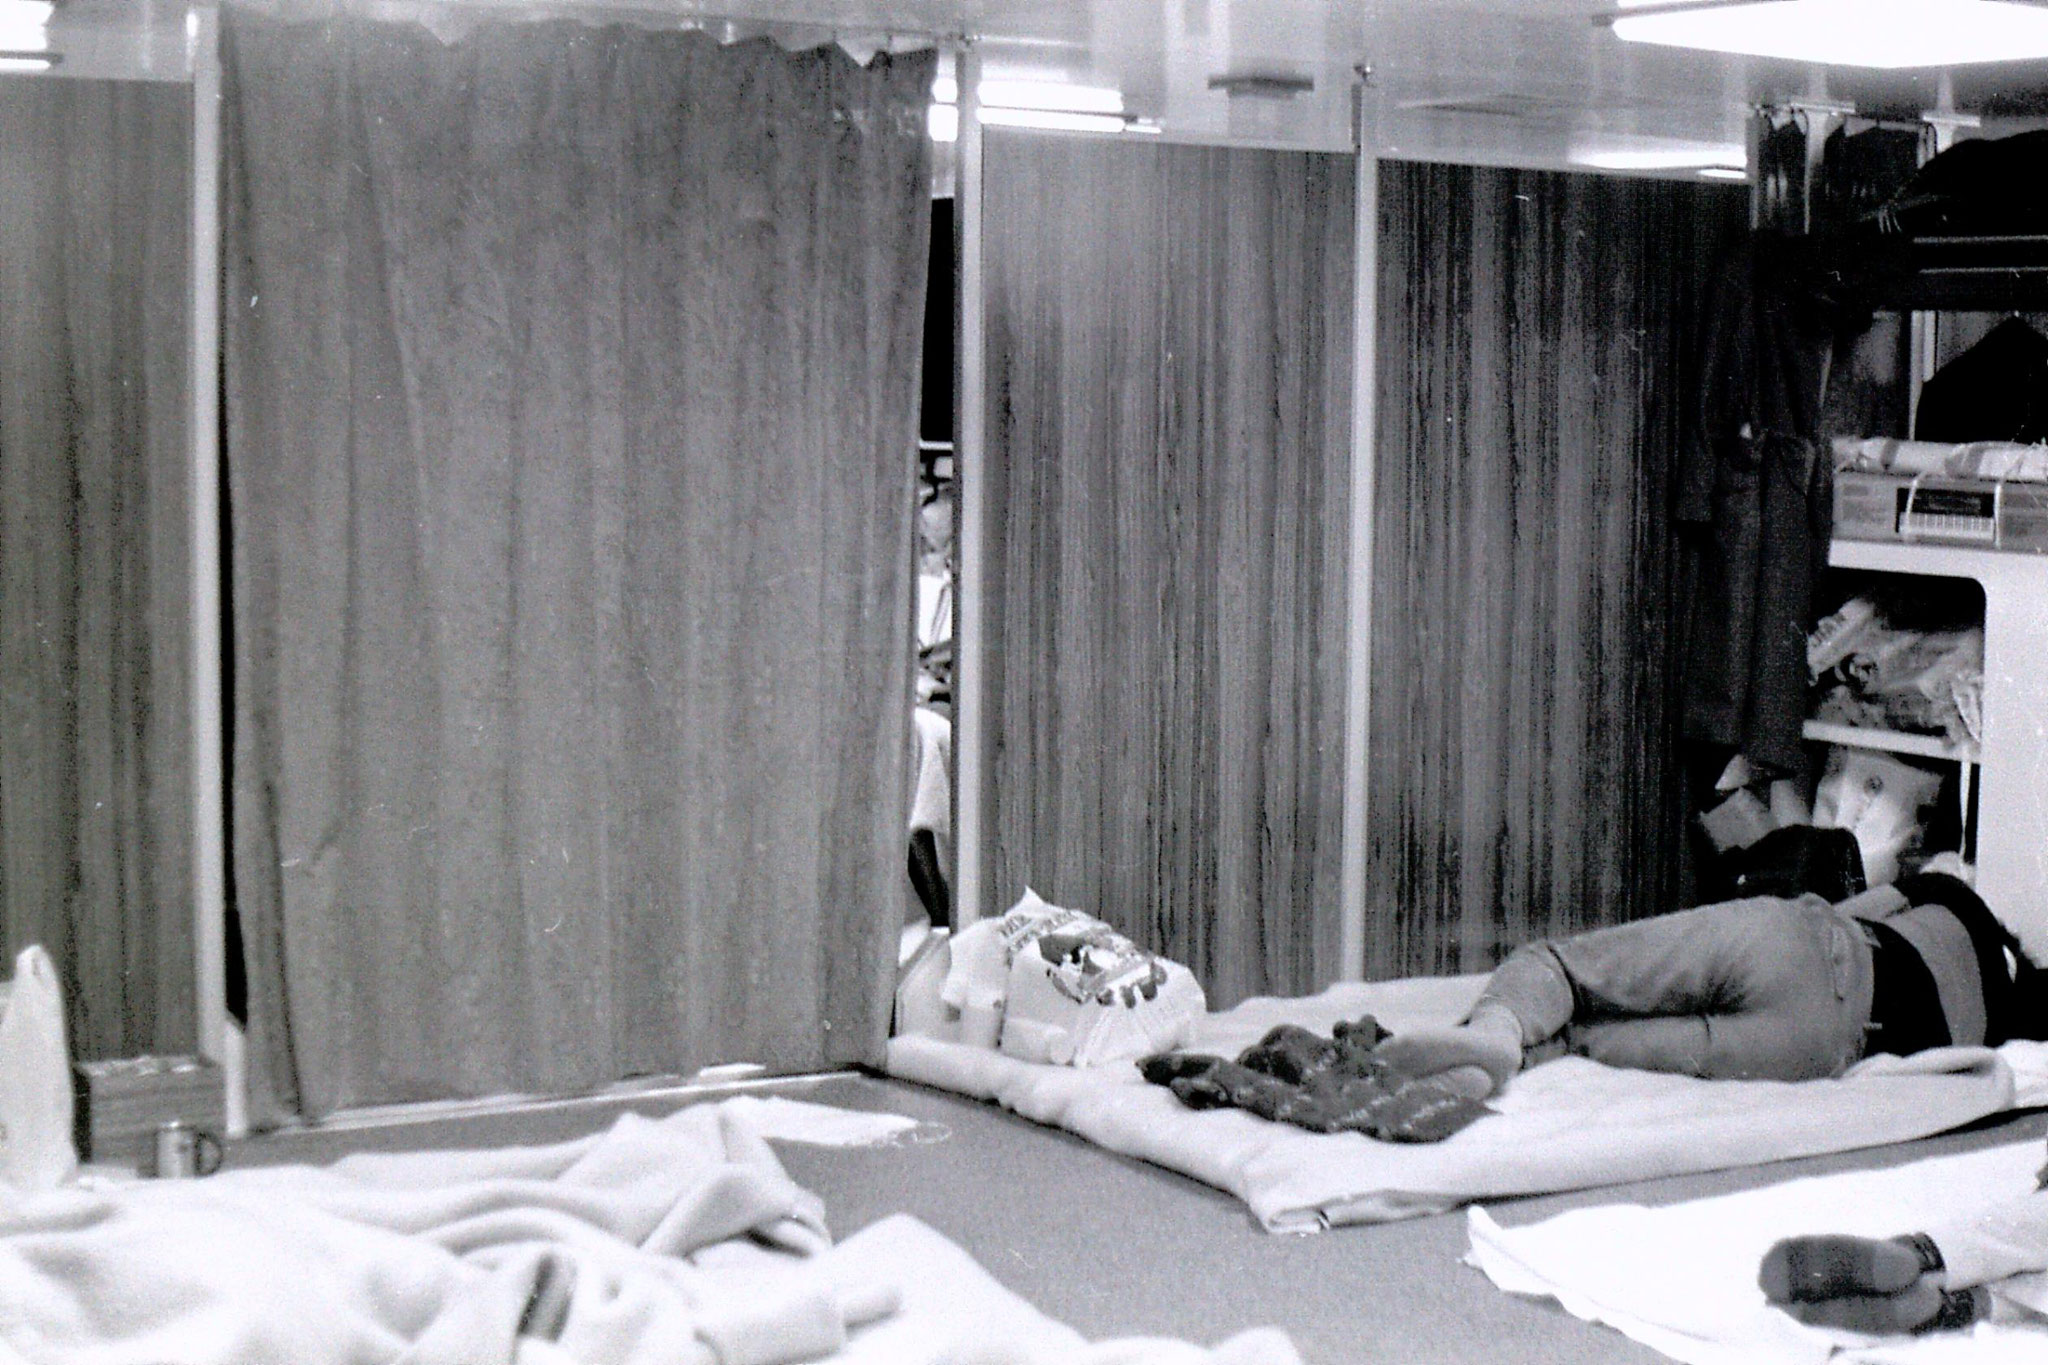 6/2/1989: 30: sleeping quarters on boat to Shanghai